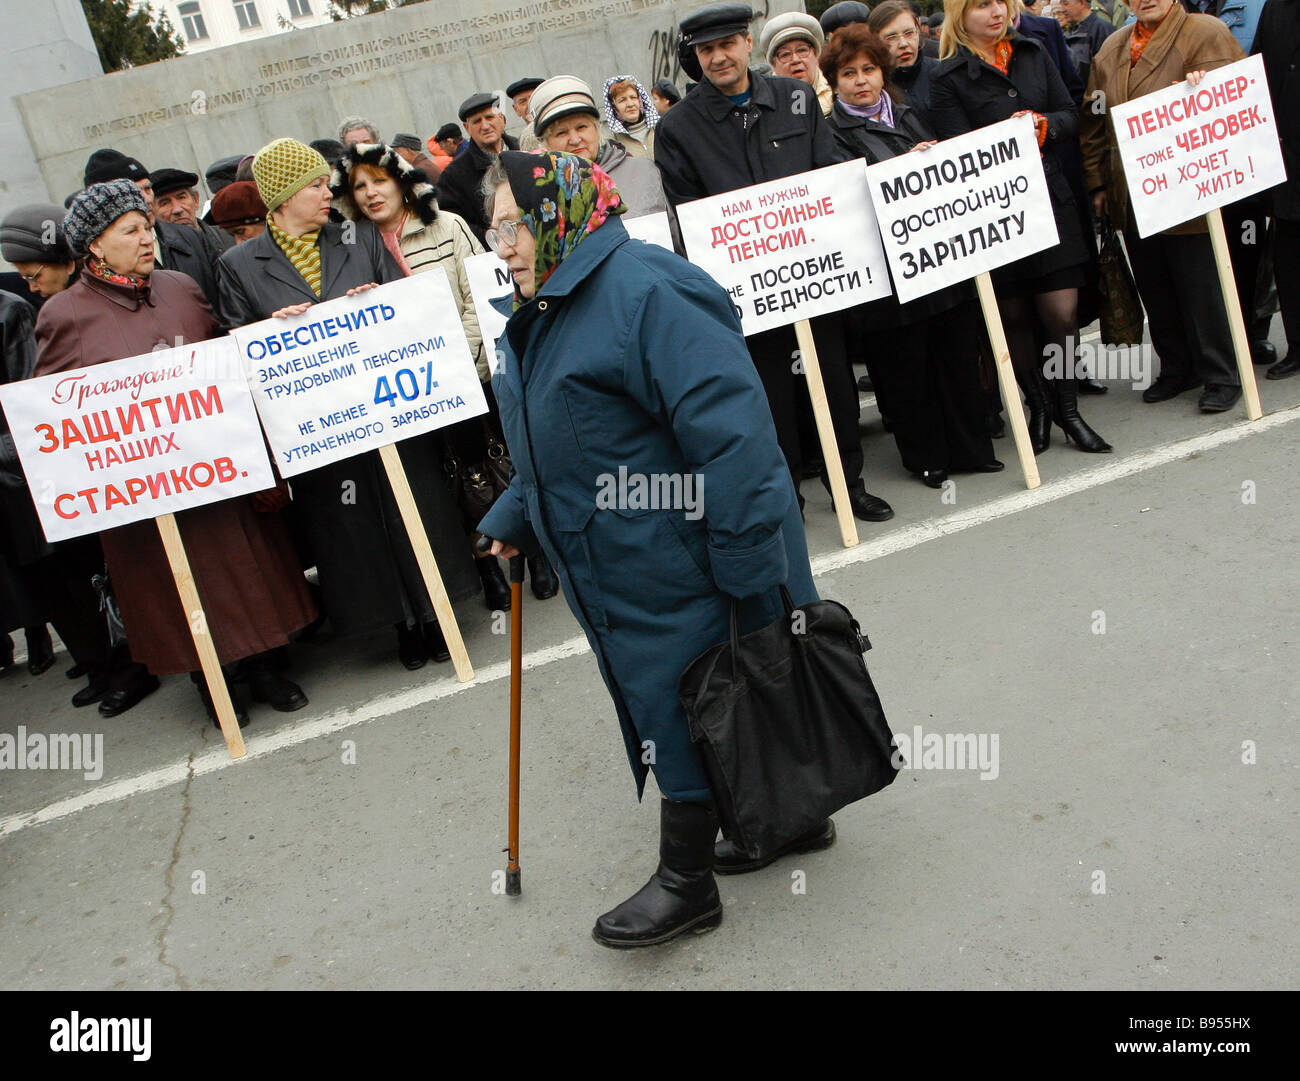 Participants in All Russian labor union protest For Worthy Pensions in Kurgan - Stock Image